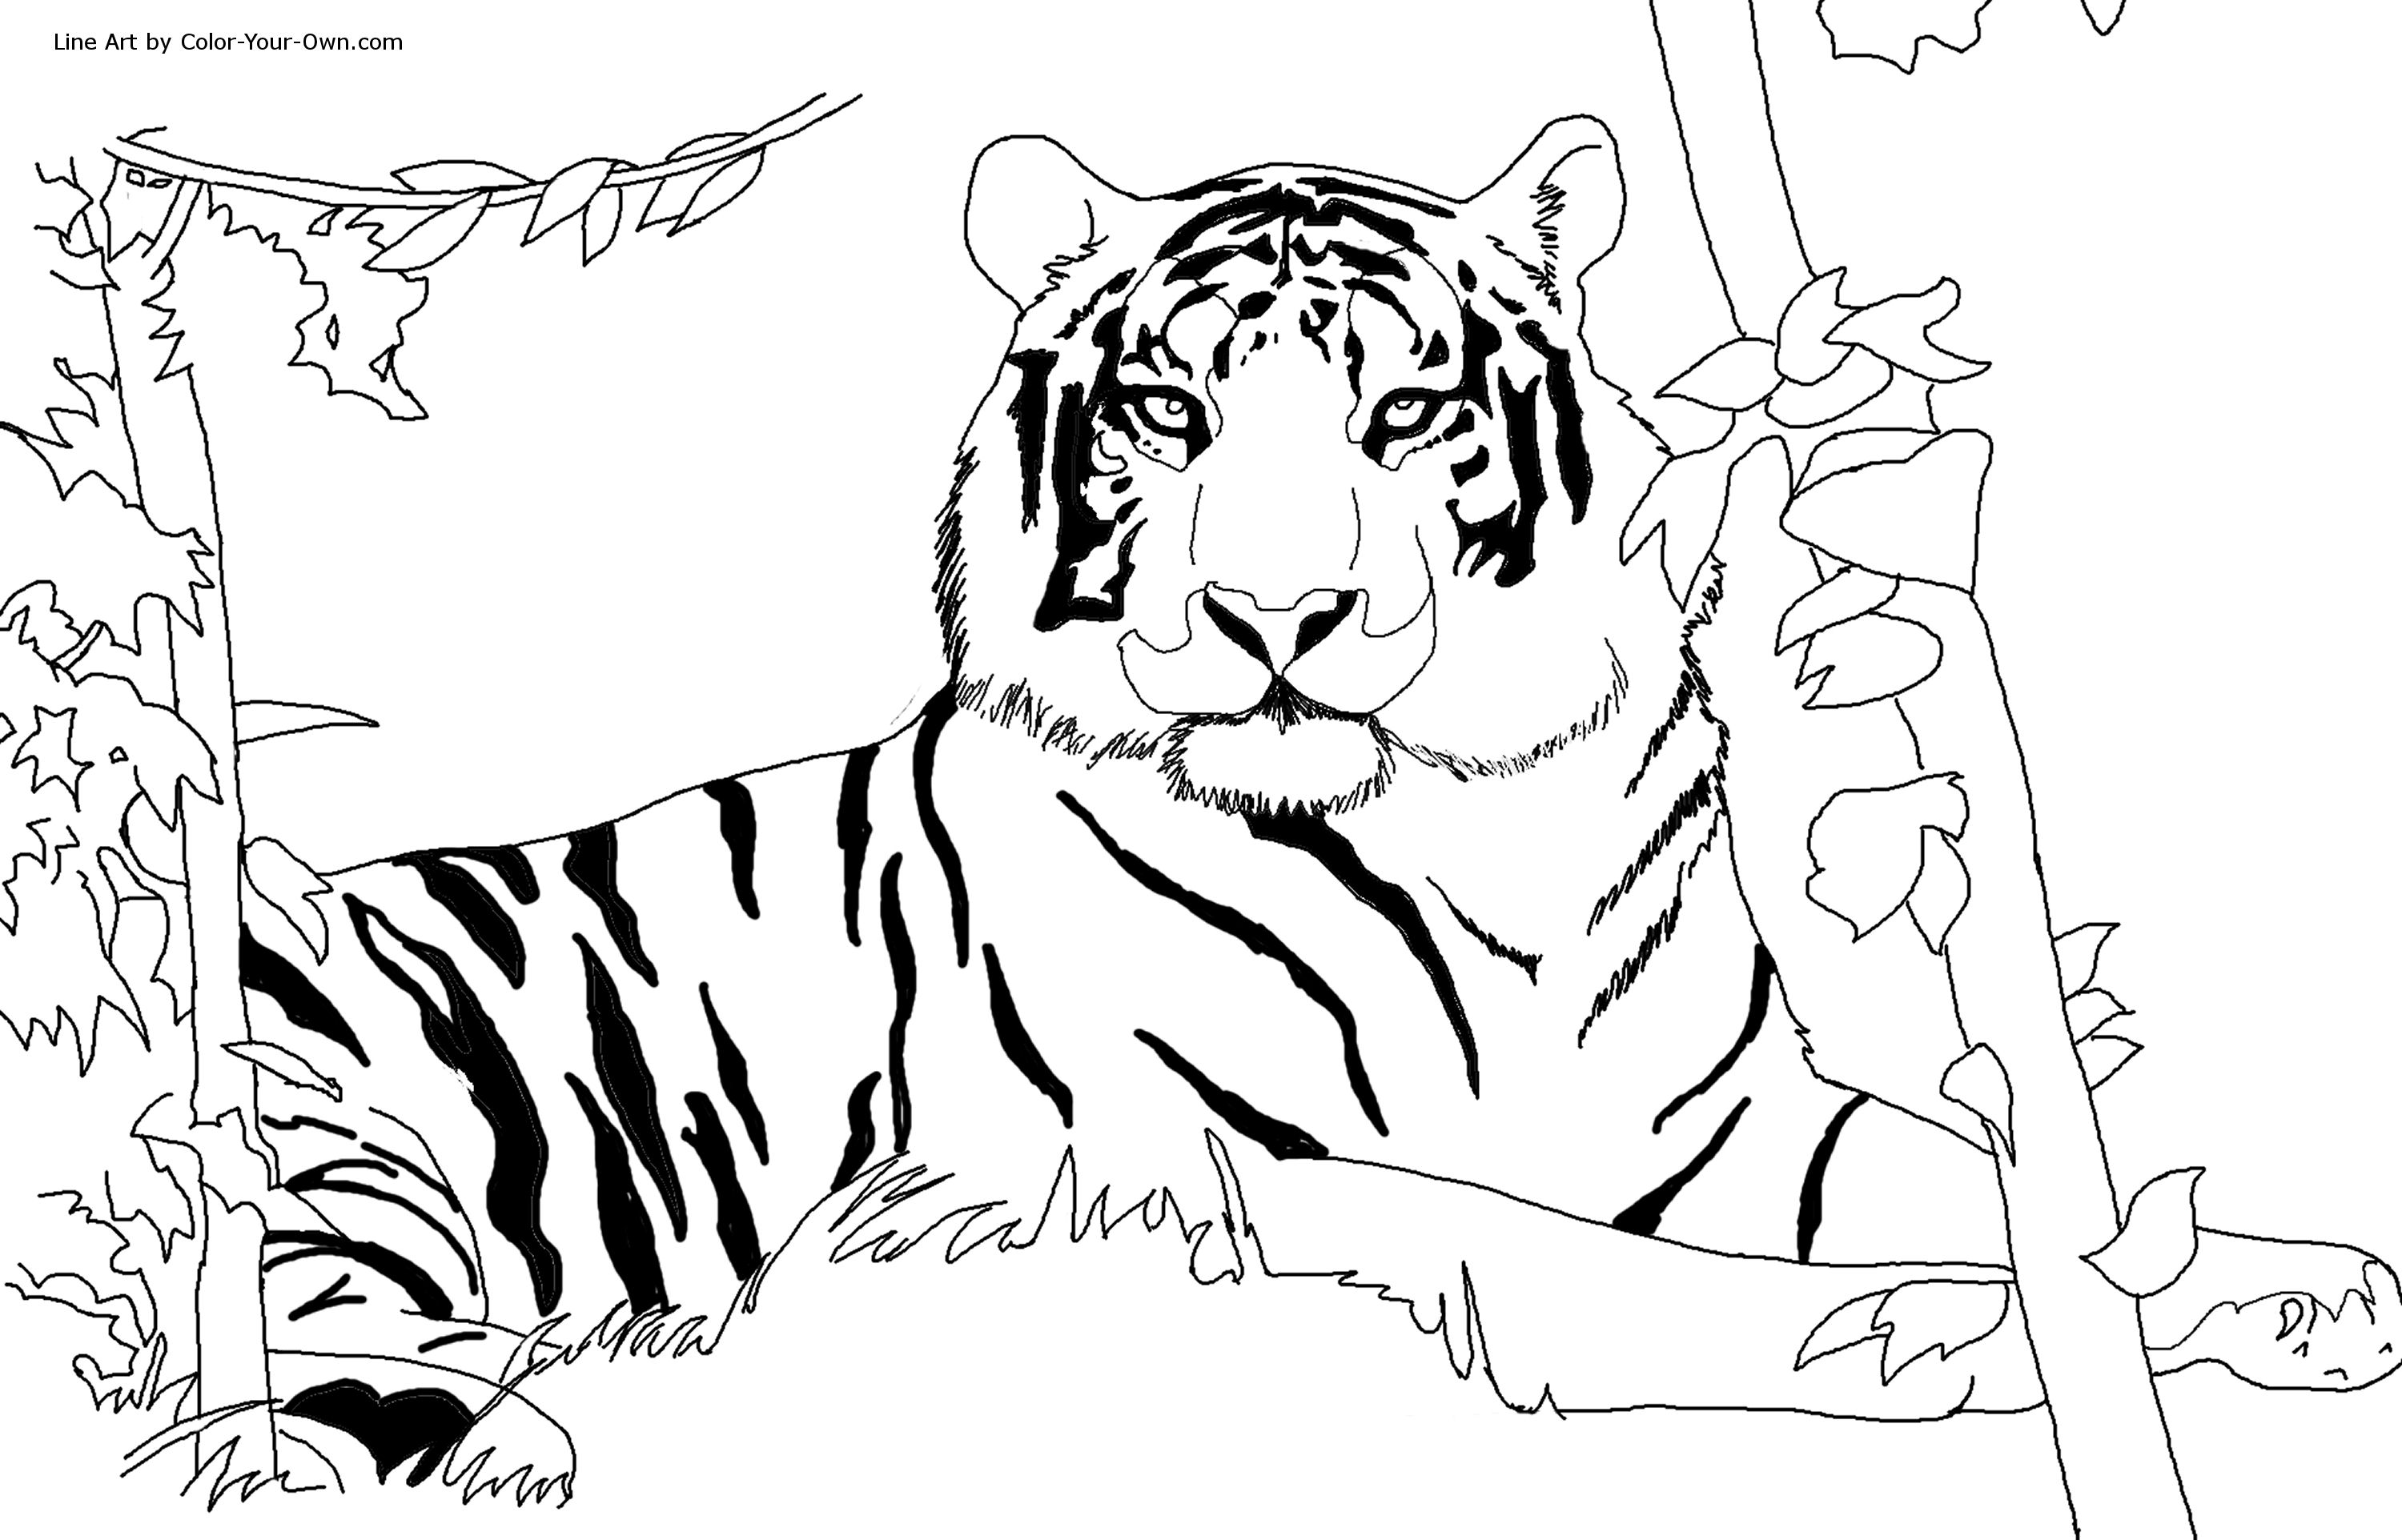 Coloring pages 8 1 2 x 11 - Coloring Pages 8 1 2 X 11 48